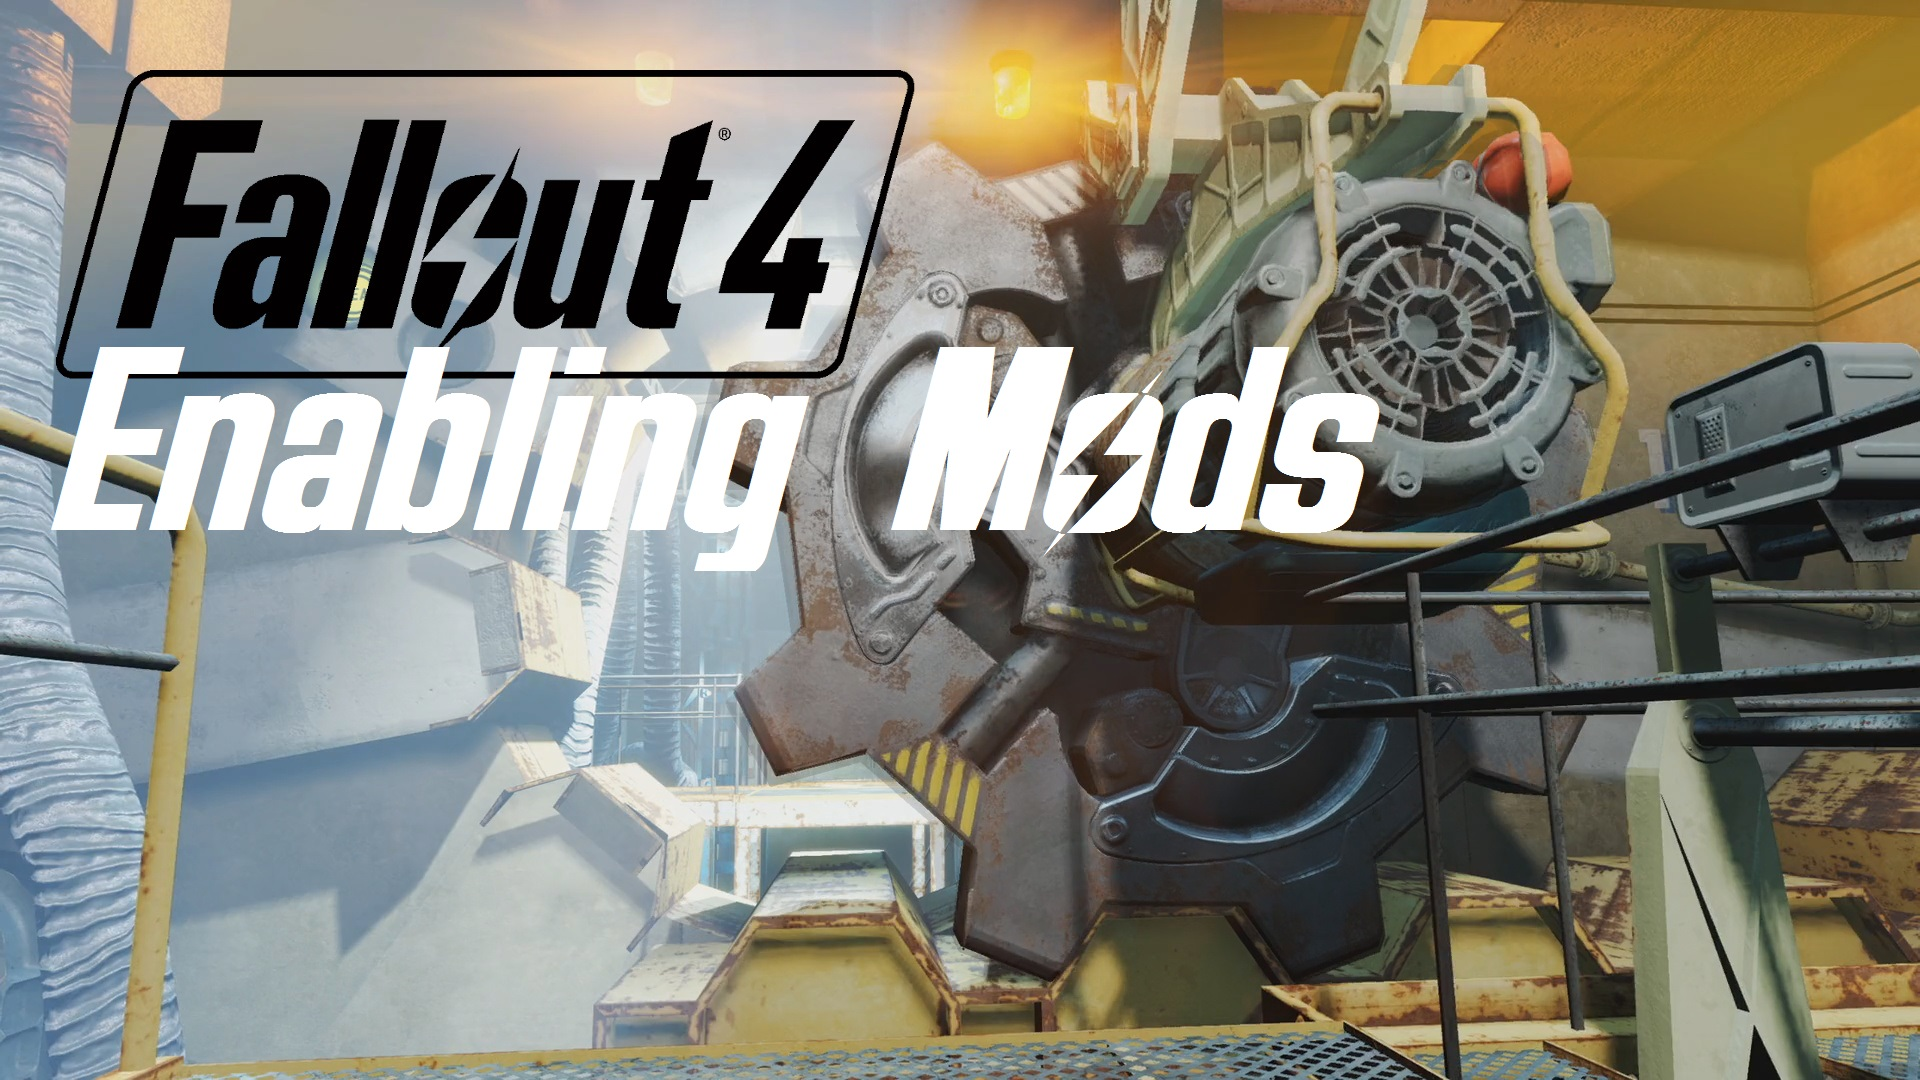 Fallout 4 Enabling Mods